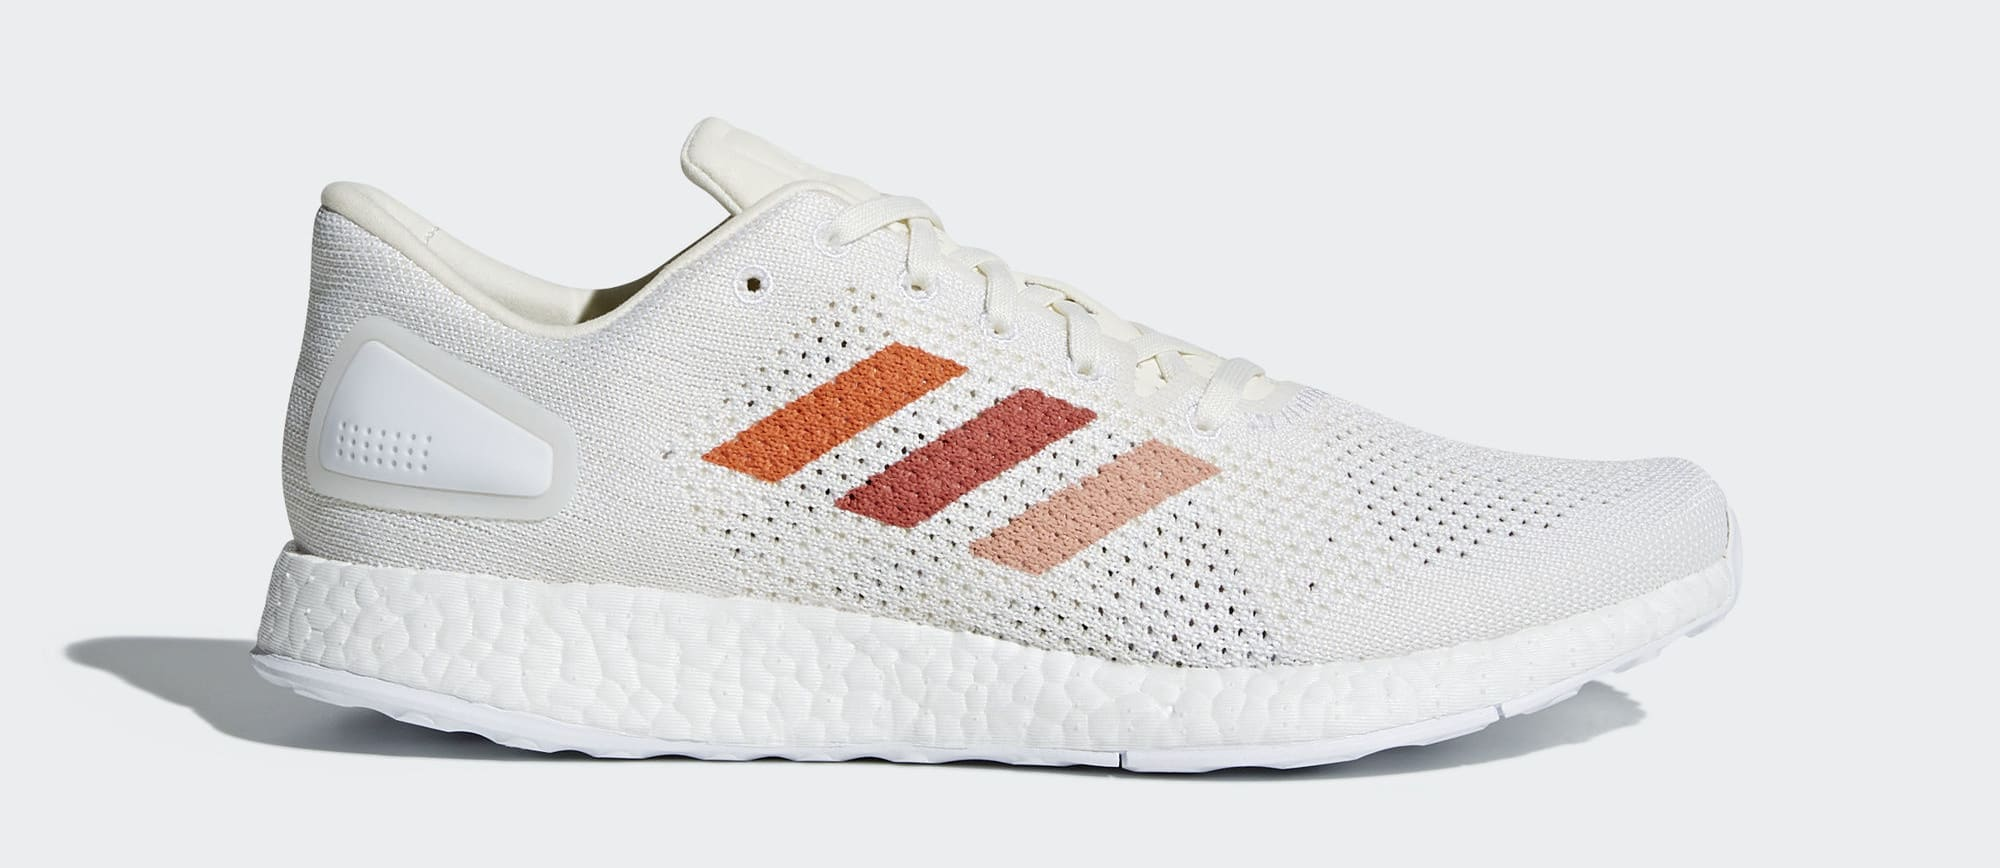 Adidas Pure Boost DPR 'Pride' B44878 (Lateral)